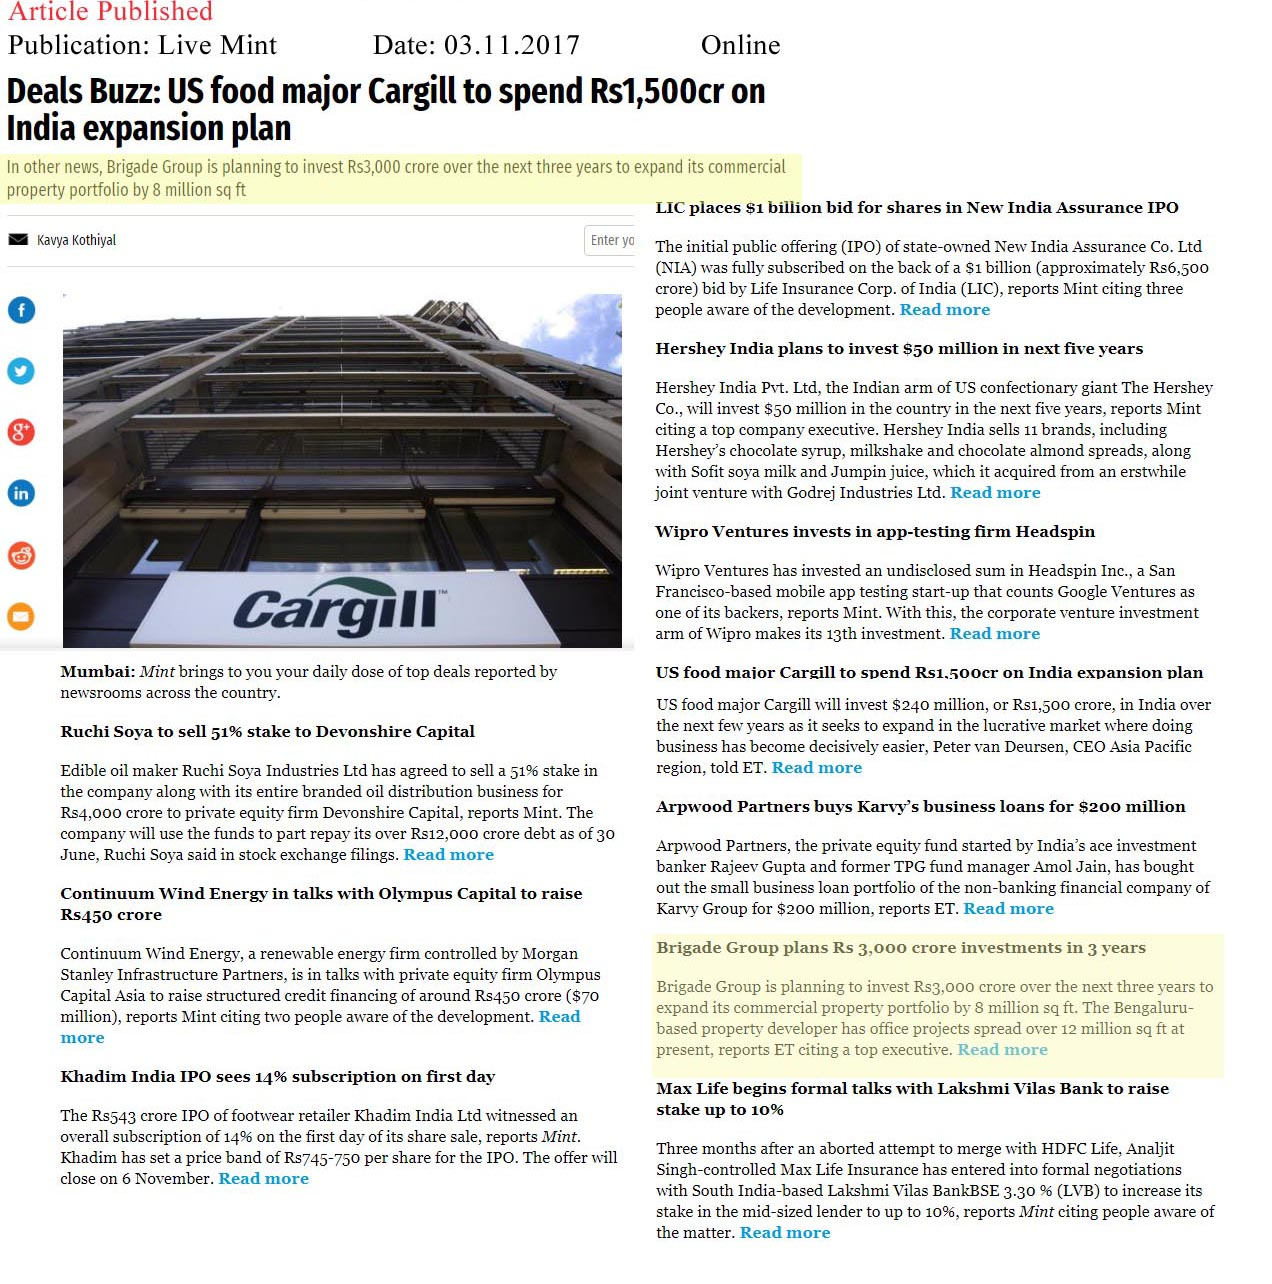 Deals Buzz: US food major Cargill to spend Rs.1,500 cr on India expansion plan—Live Mint–Online